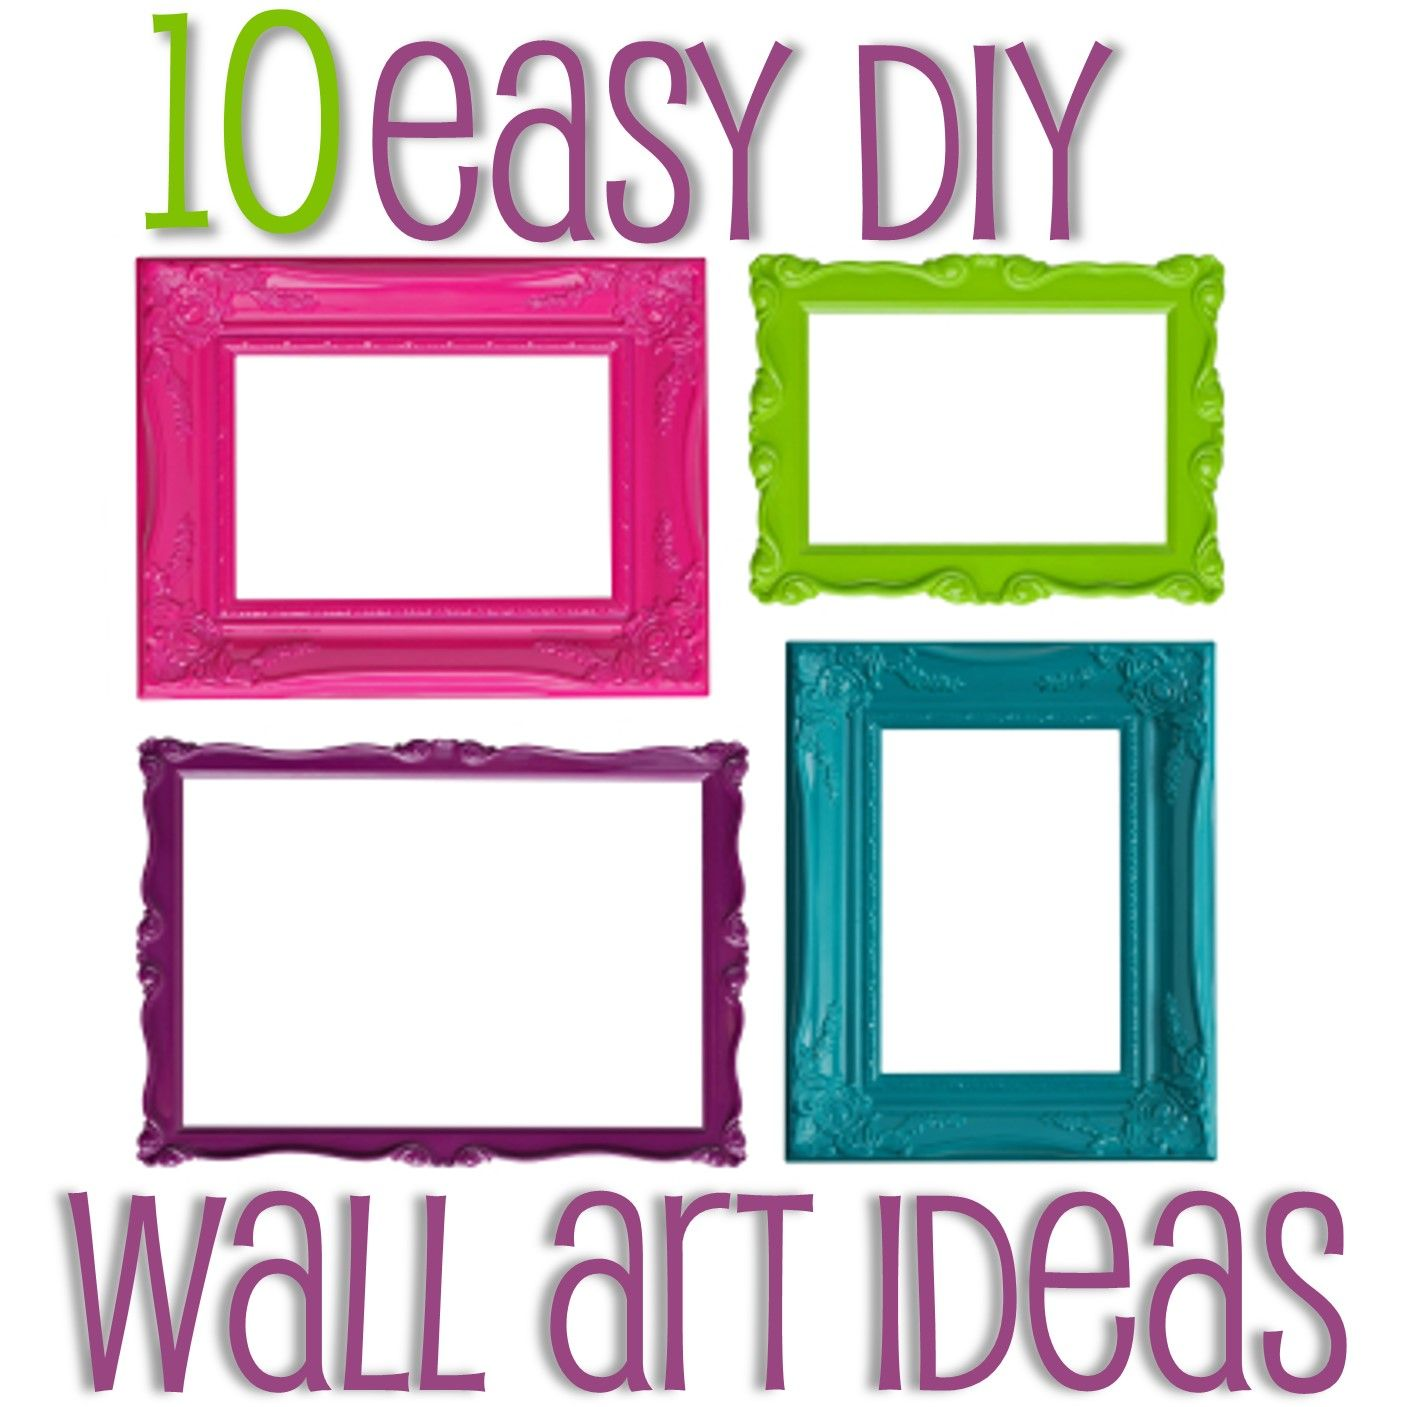 easy diy wall art ideas diy pinterest diy wall art diy